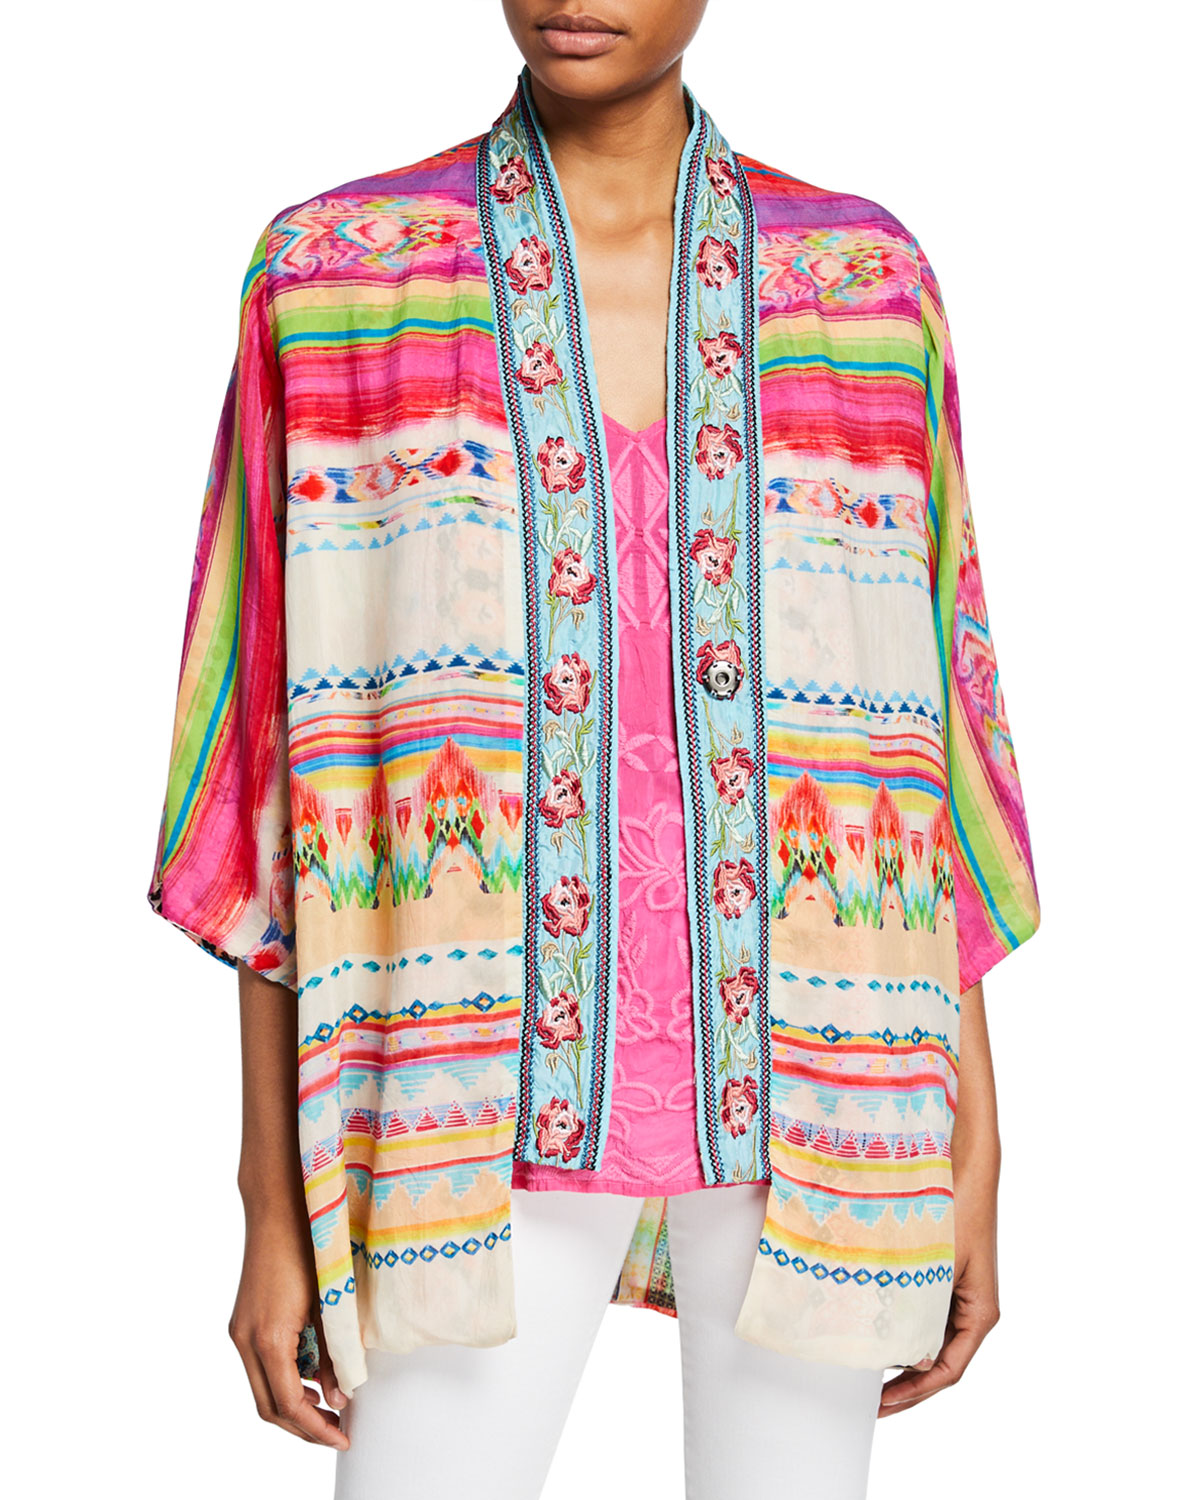 Johnny Was Tops PETITE MACI REVERSIBLE GEORGETTE KIMONO WITH EMBROIDERED TRIM